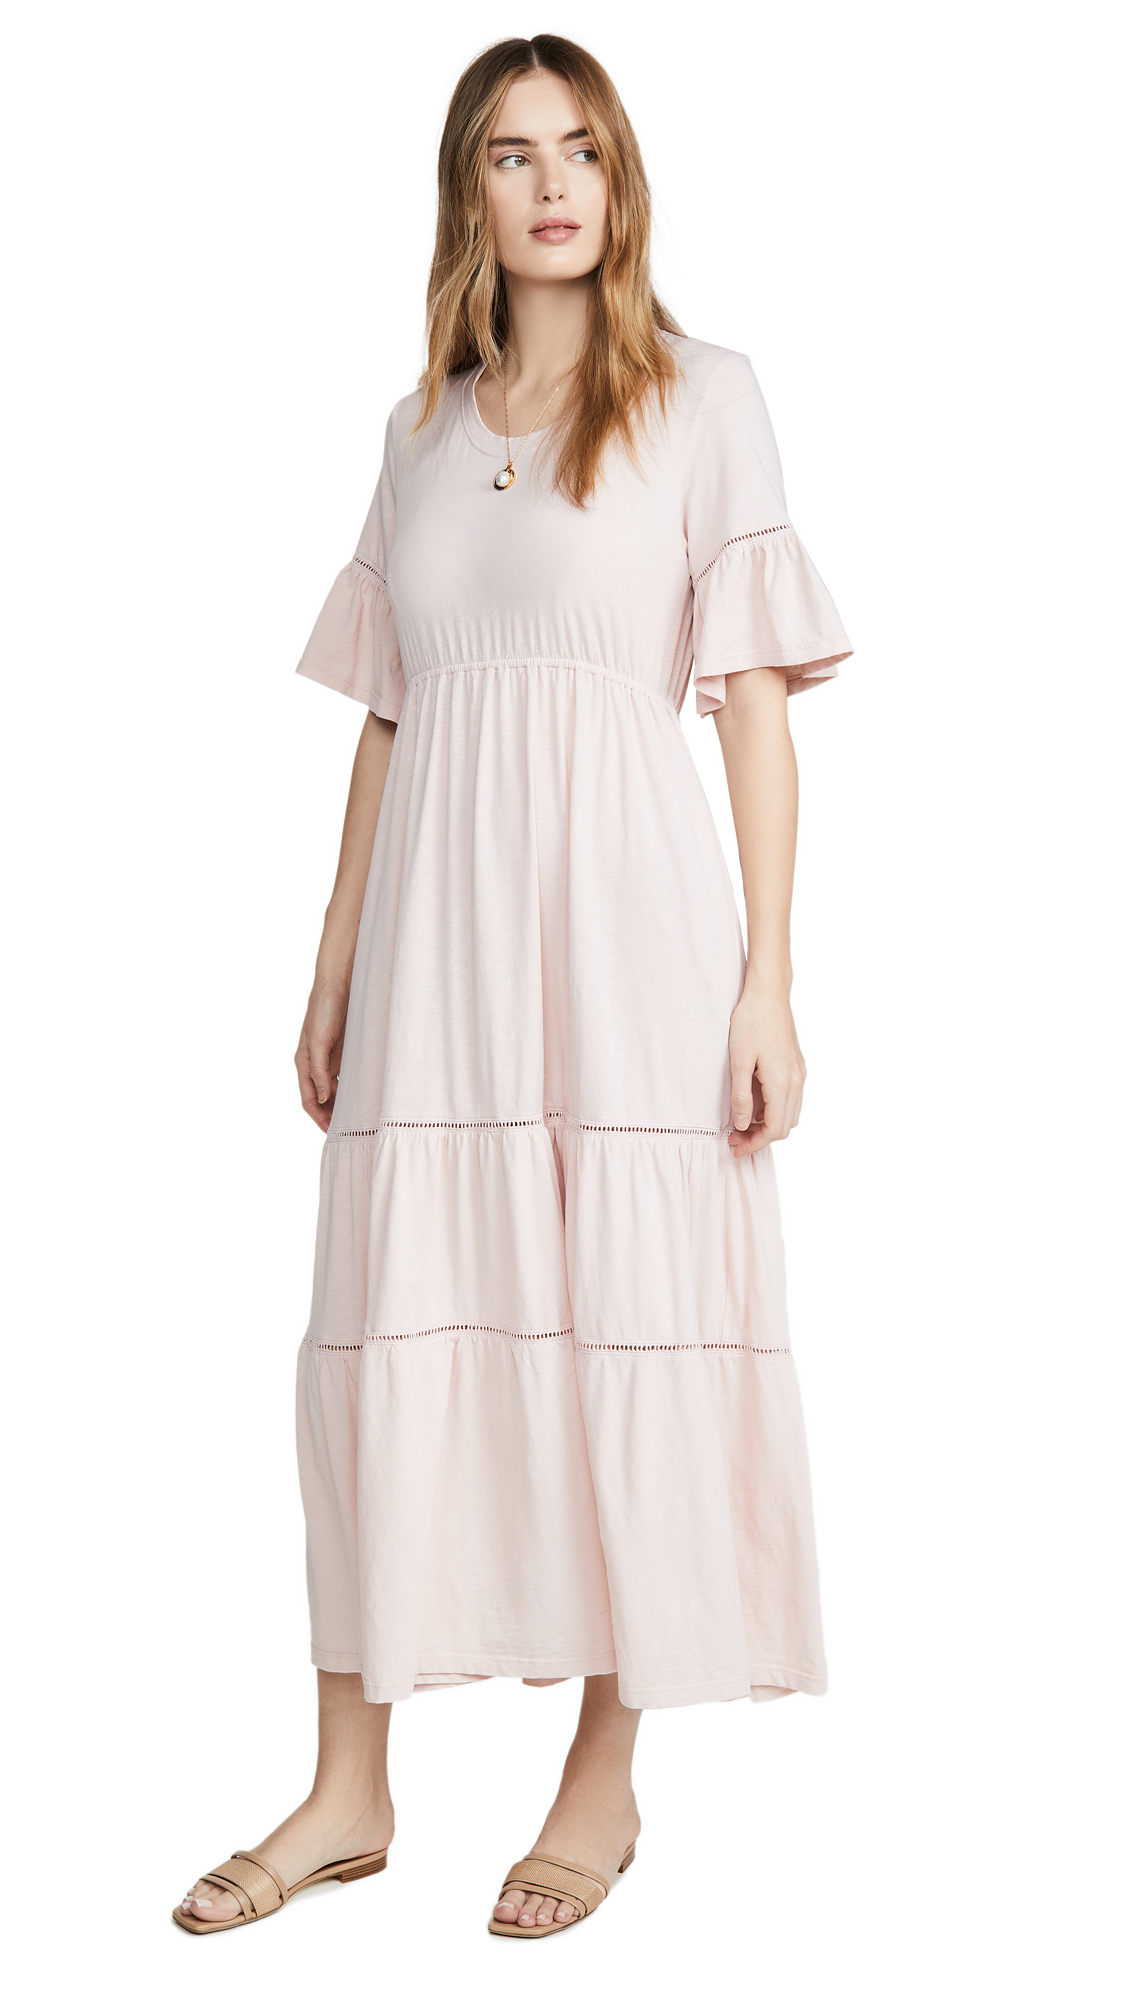 SUNDRY Ladder Dress - 30% Off Sale